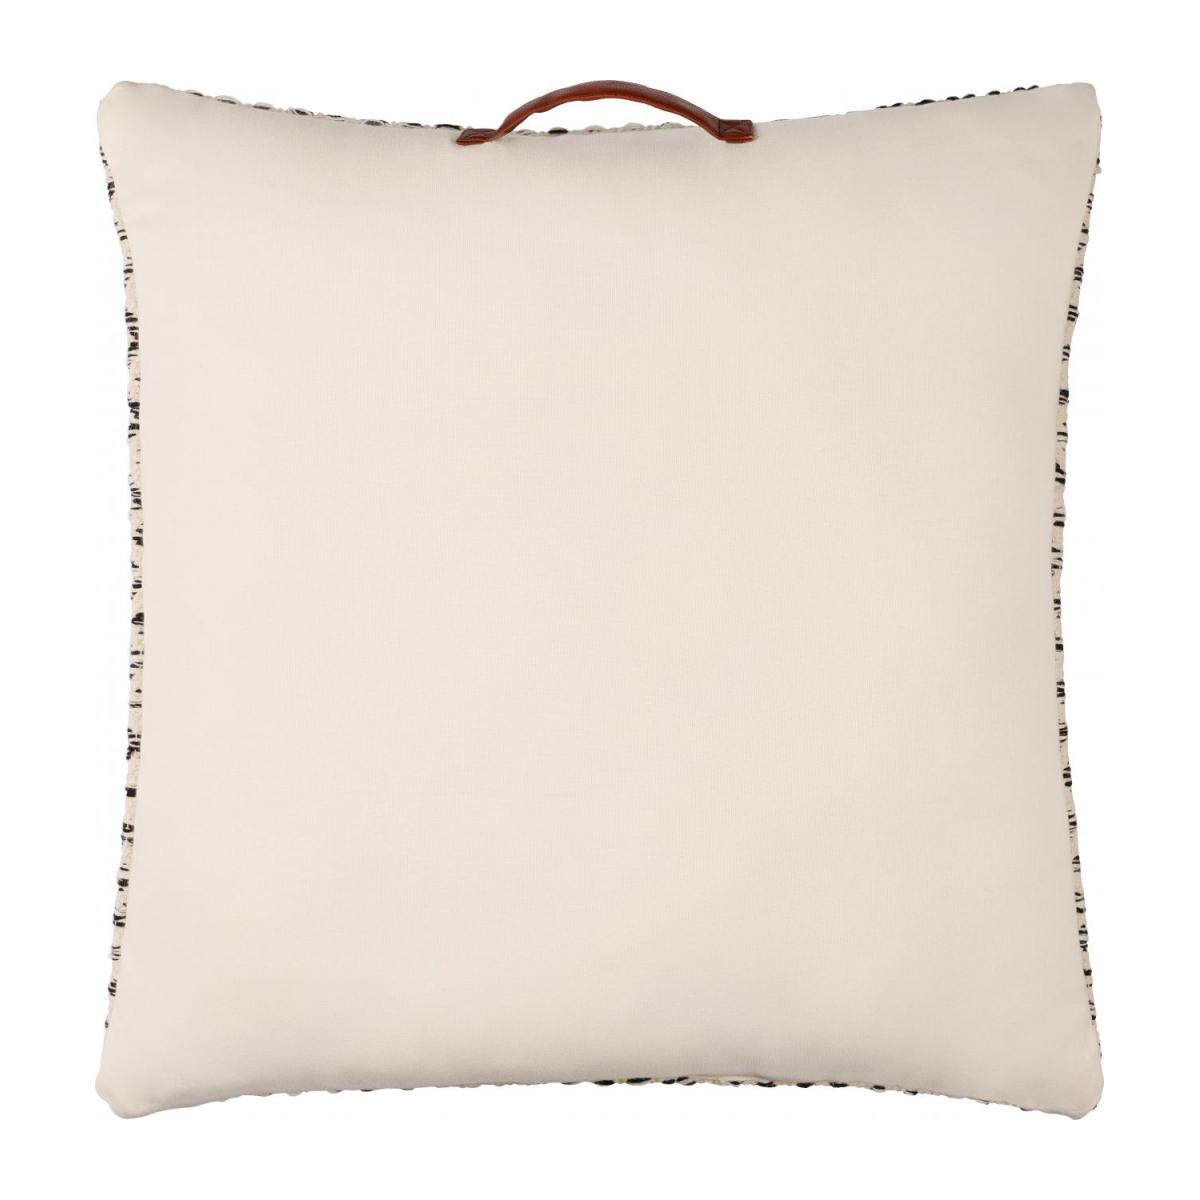 Cotton Floor Cushion 75x75cm Black and White  n°3